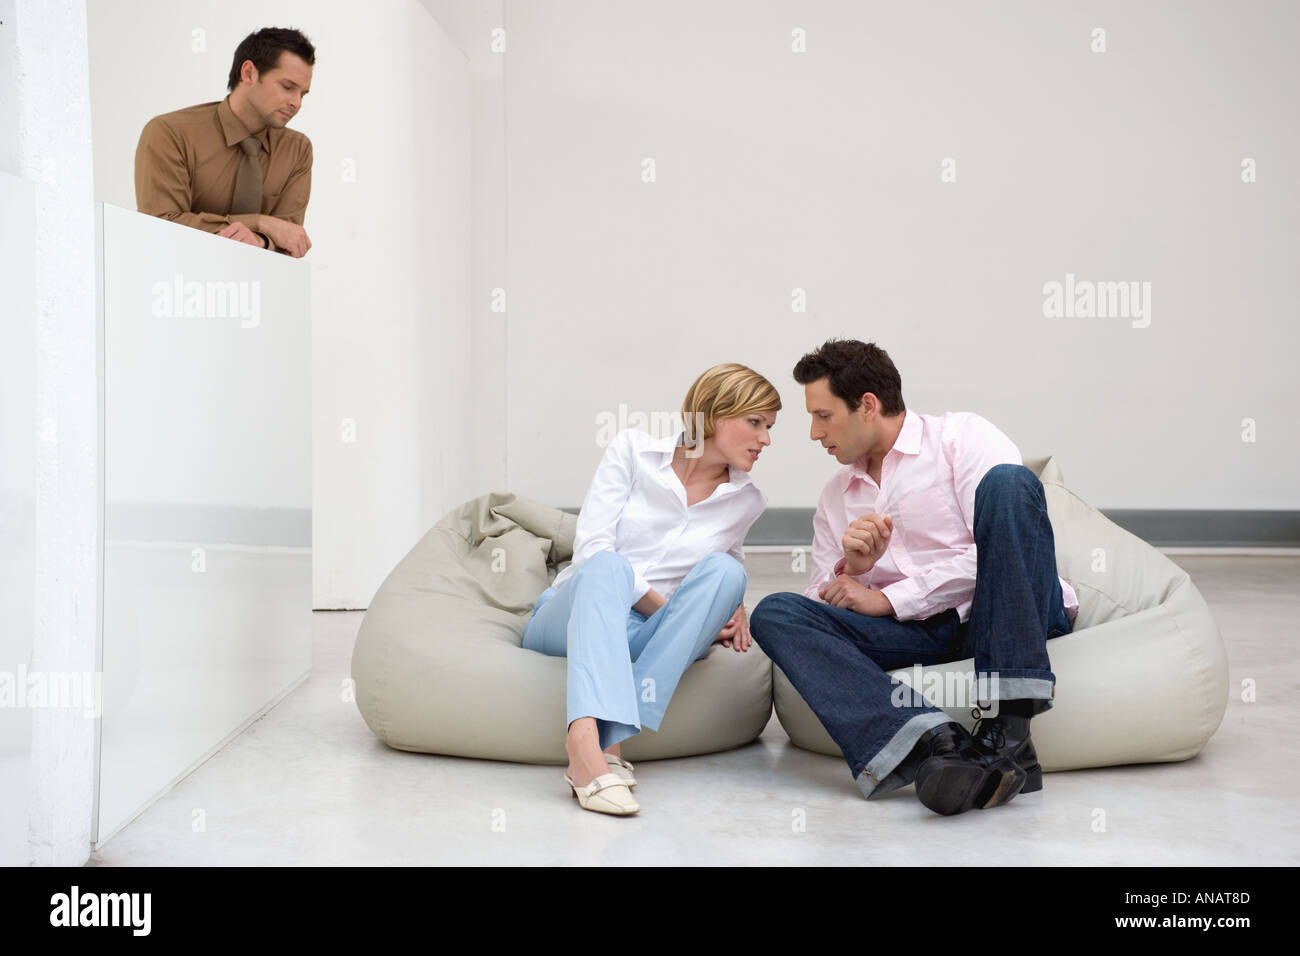 man and woman whispering to each other as another man watches and listens - Stock Image